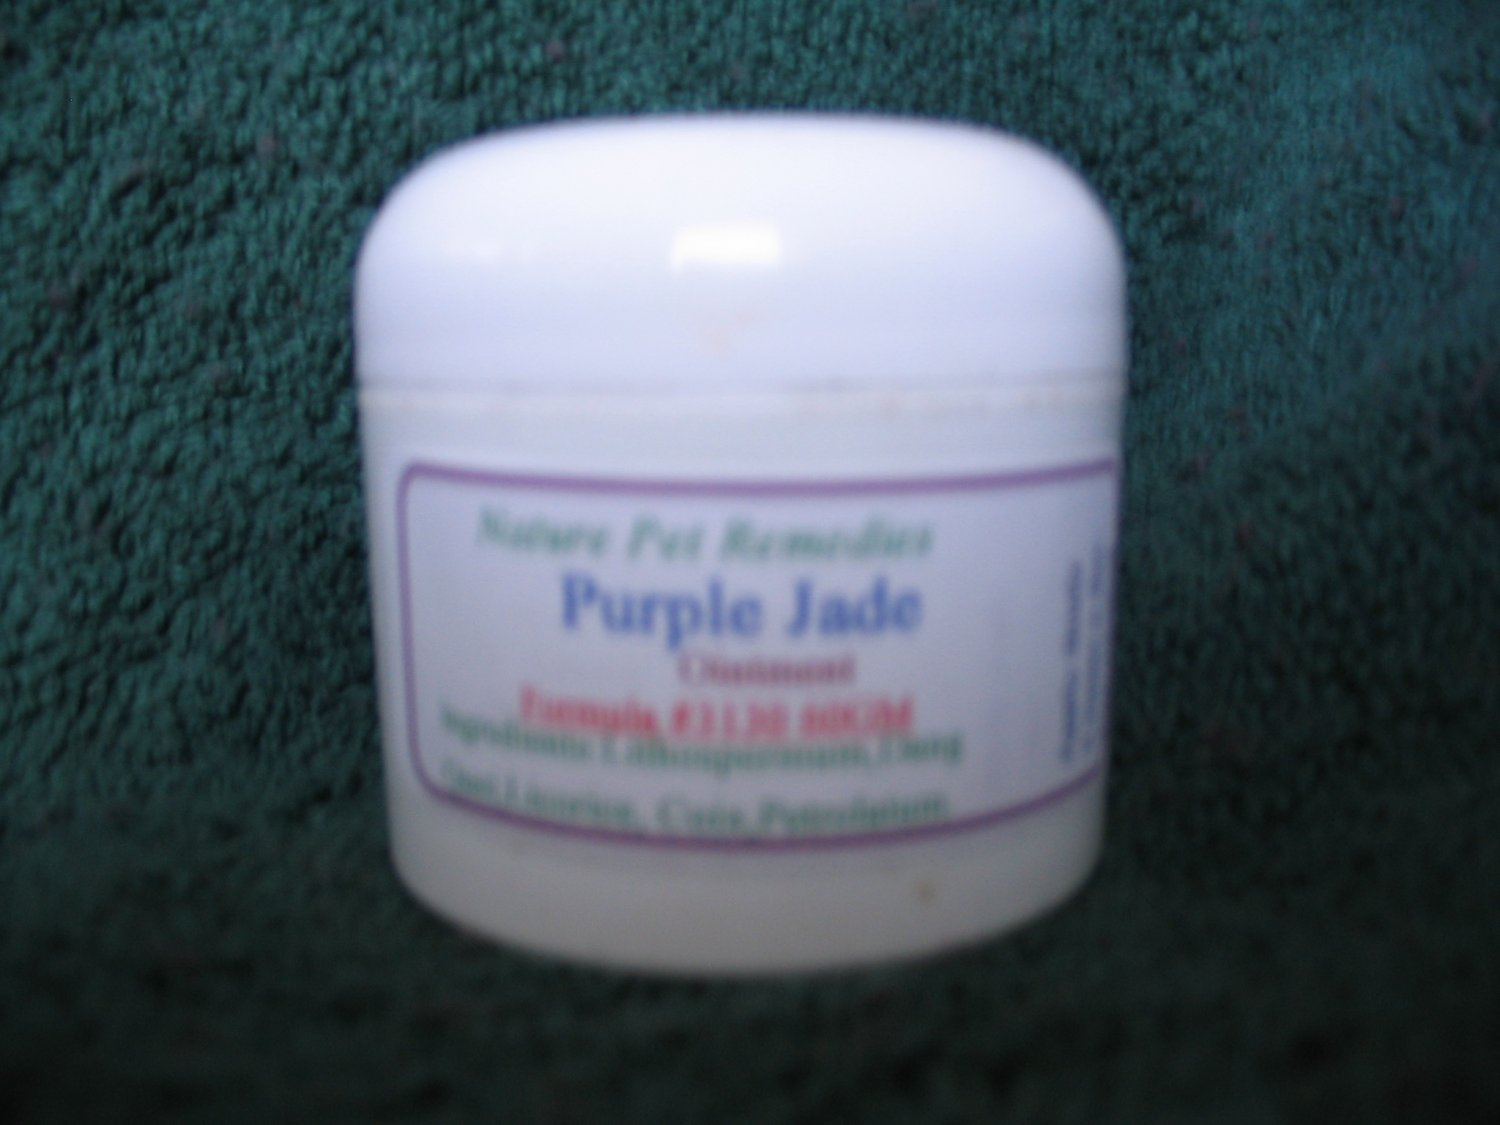 Purple Jade  Balm # 3130 60 GM